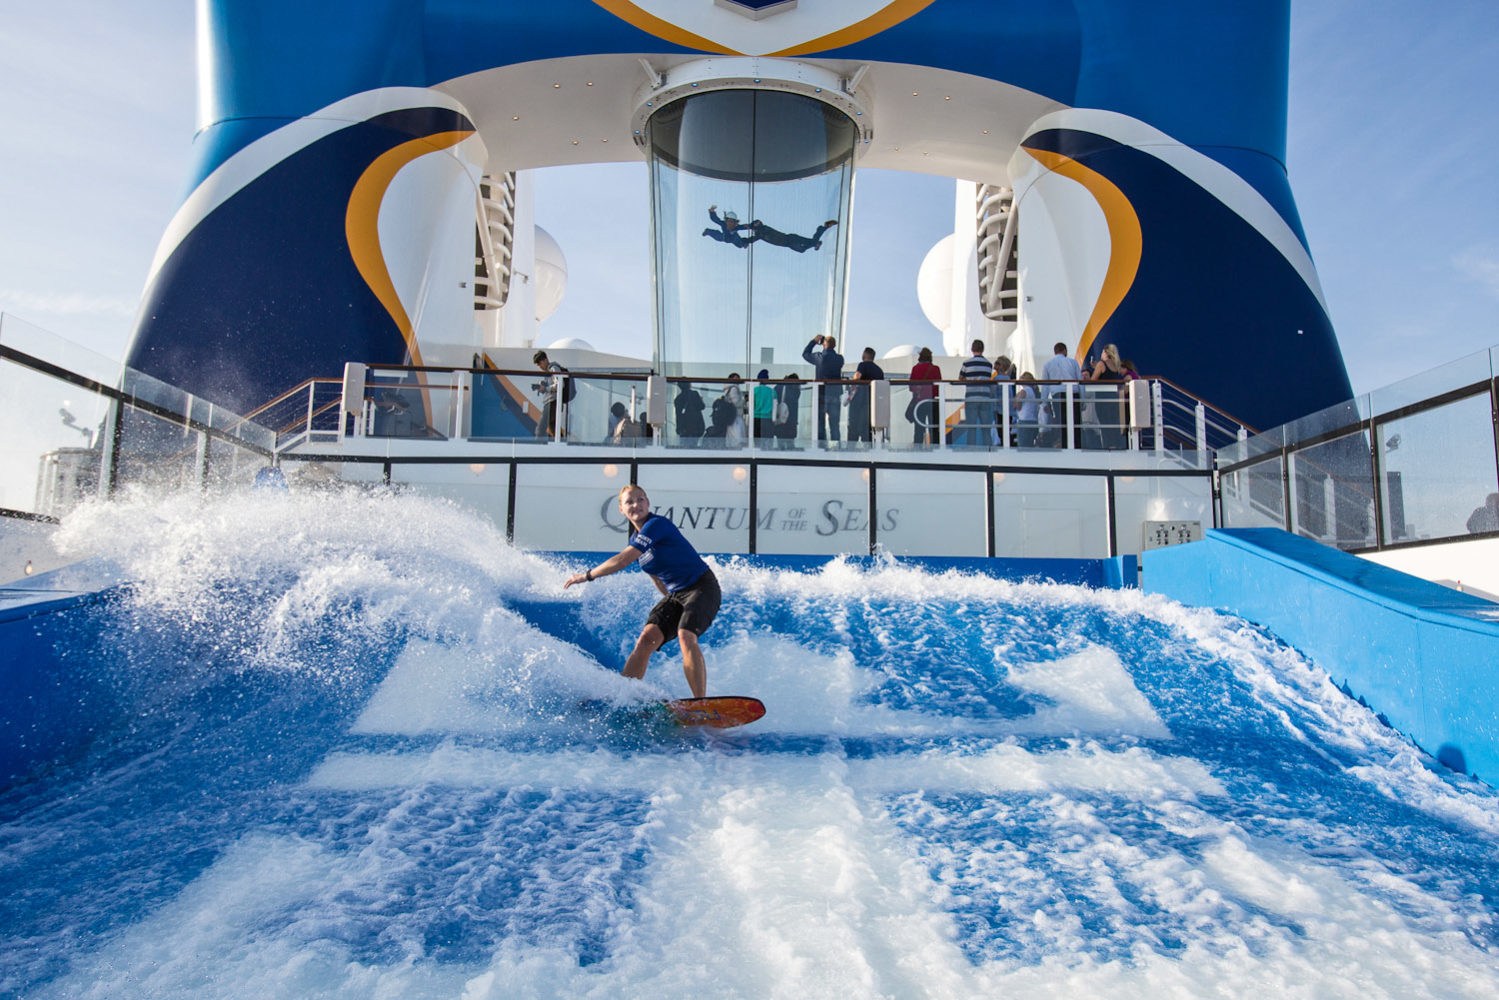 Wave pool and indoor skydiving, Quantum of the Seas, Royal Caribbean Cruise Line